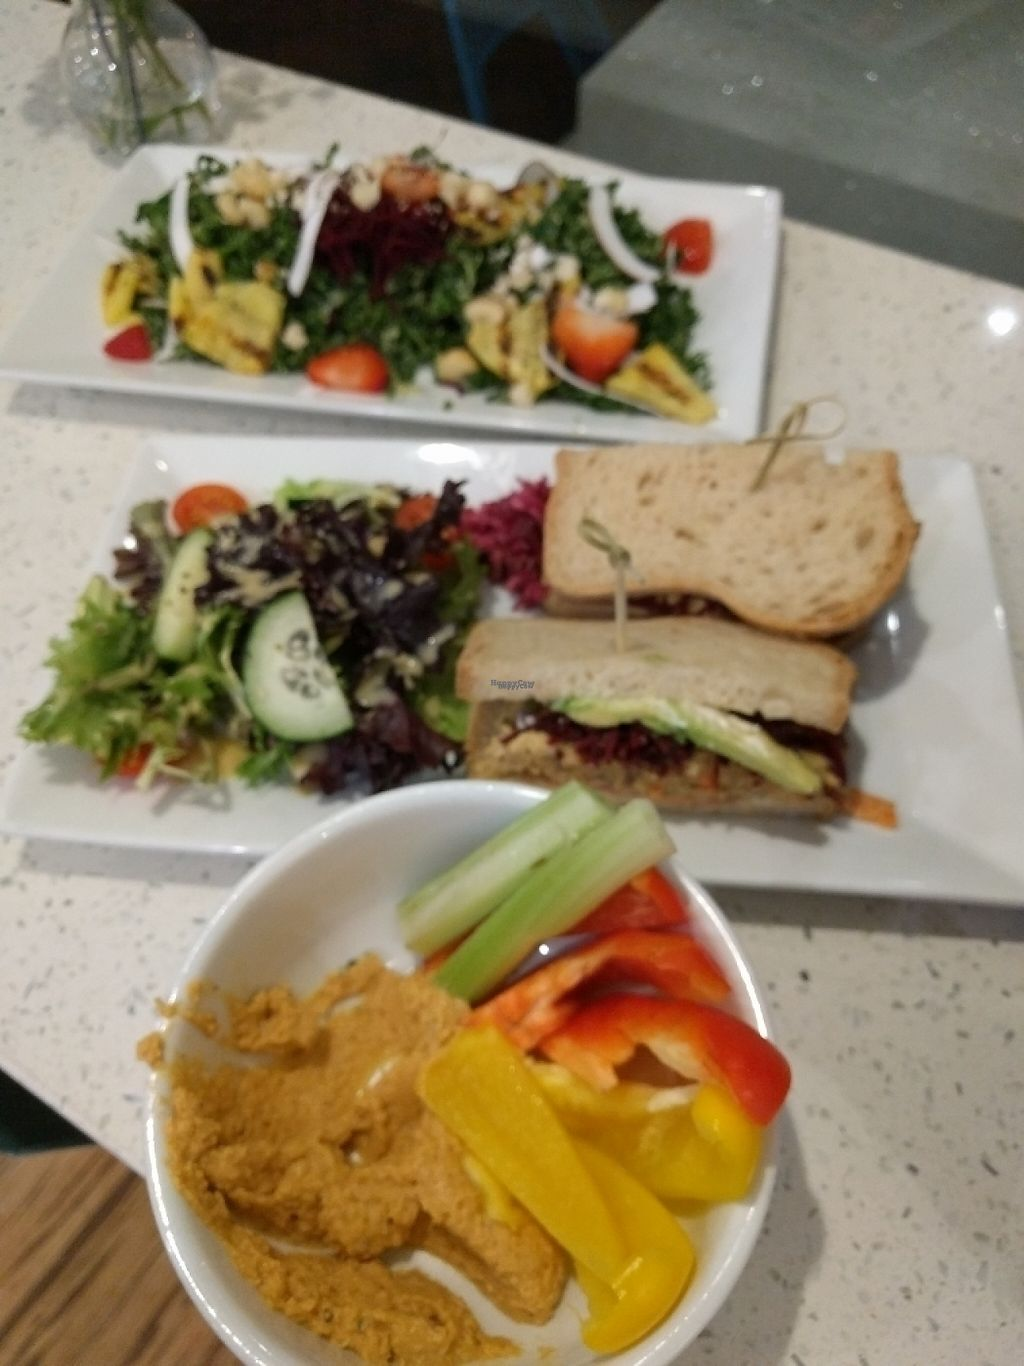 """Photo of JOi Cafe  by <a href=""""/members/profile/MatthewVBogusz"""">MatthewVBogusz</a> <br/>three course meal, appetizer, salad, and sandwich <br/> February 11, 2017  - <a href='/contact/abuse/image/50969/225122'>Report</a>"""